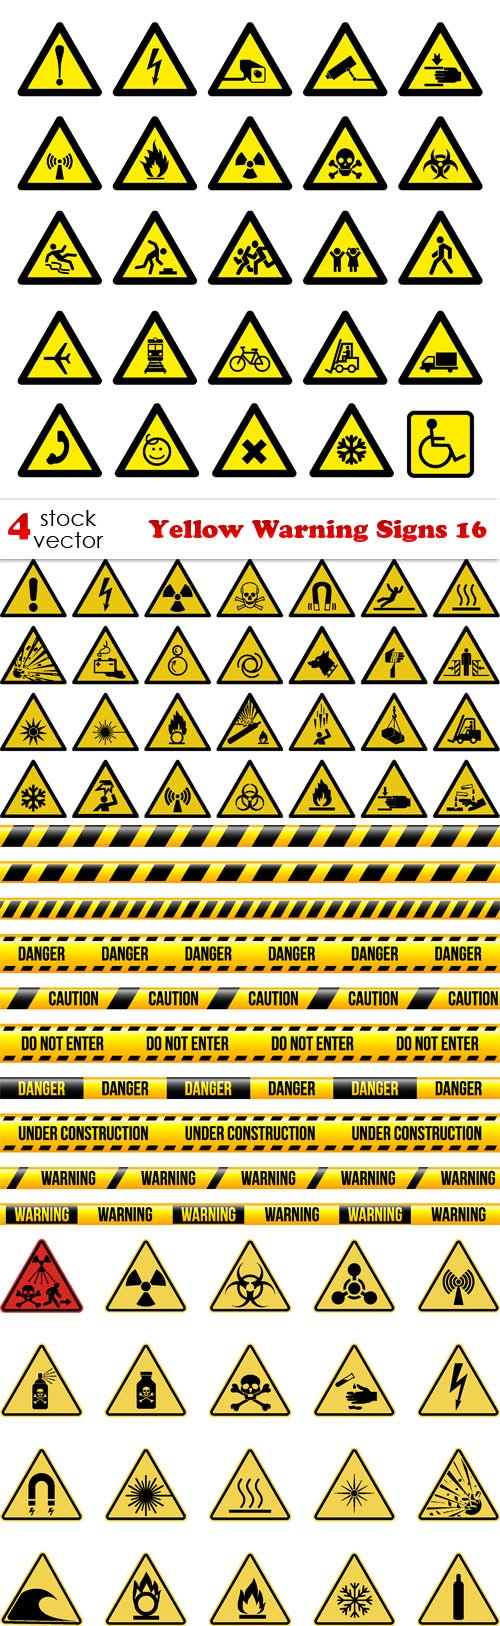 Vectors - Yellow Warning Signs 16